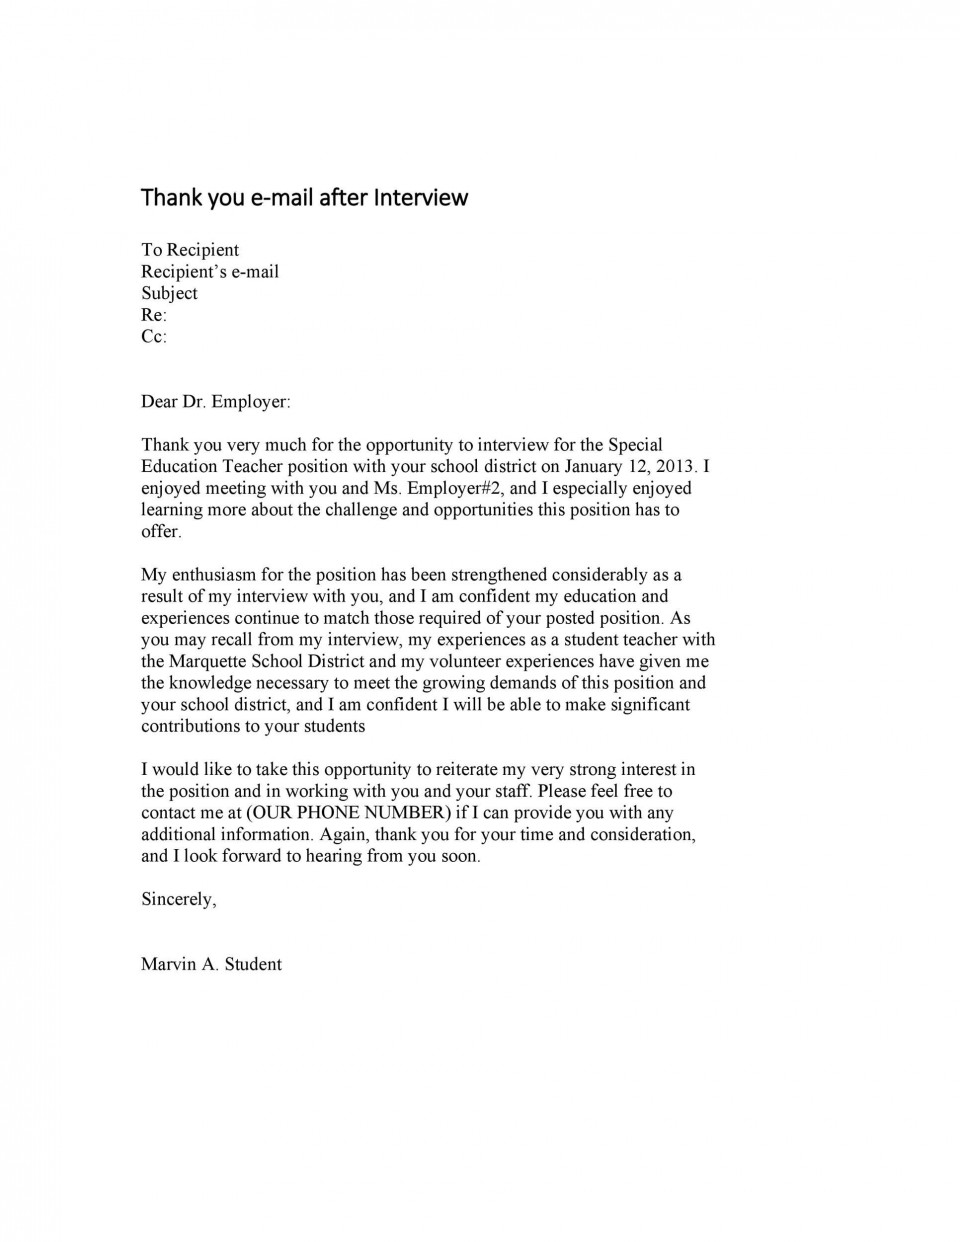 009 Frightening Thank You Note Template For Job Interview Image  Letter Sample After Card960